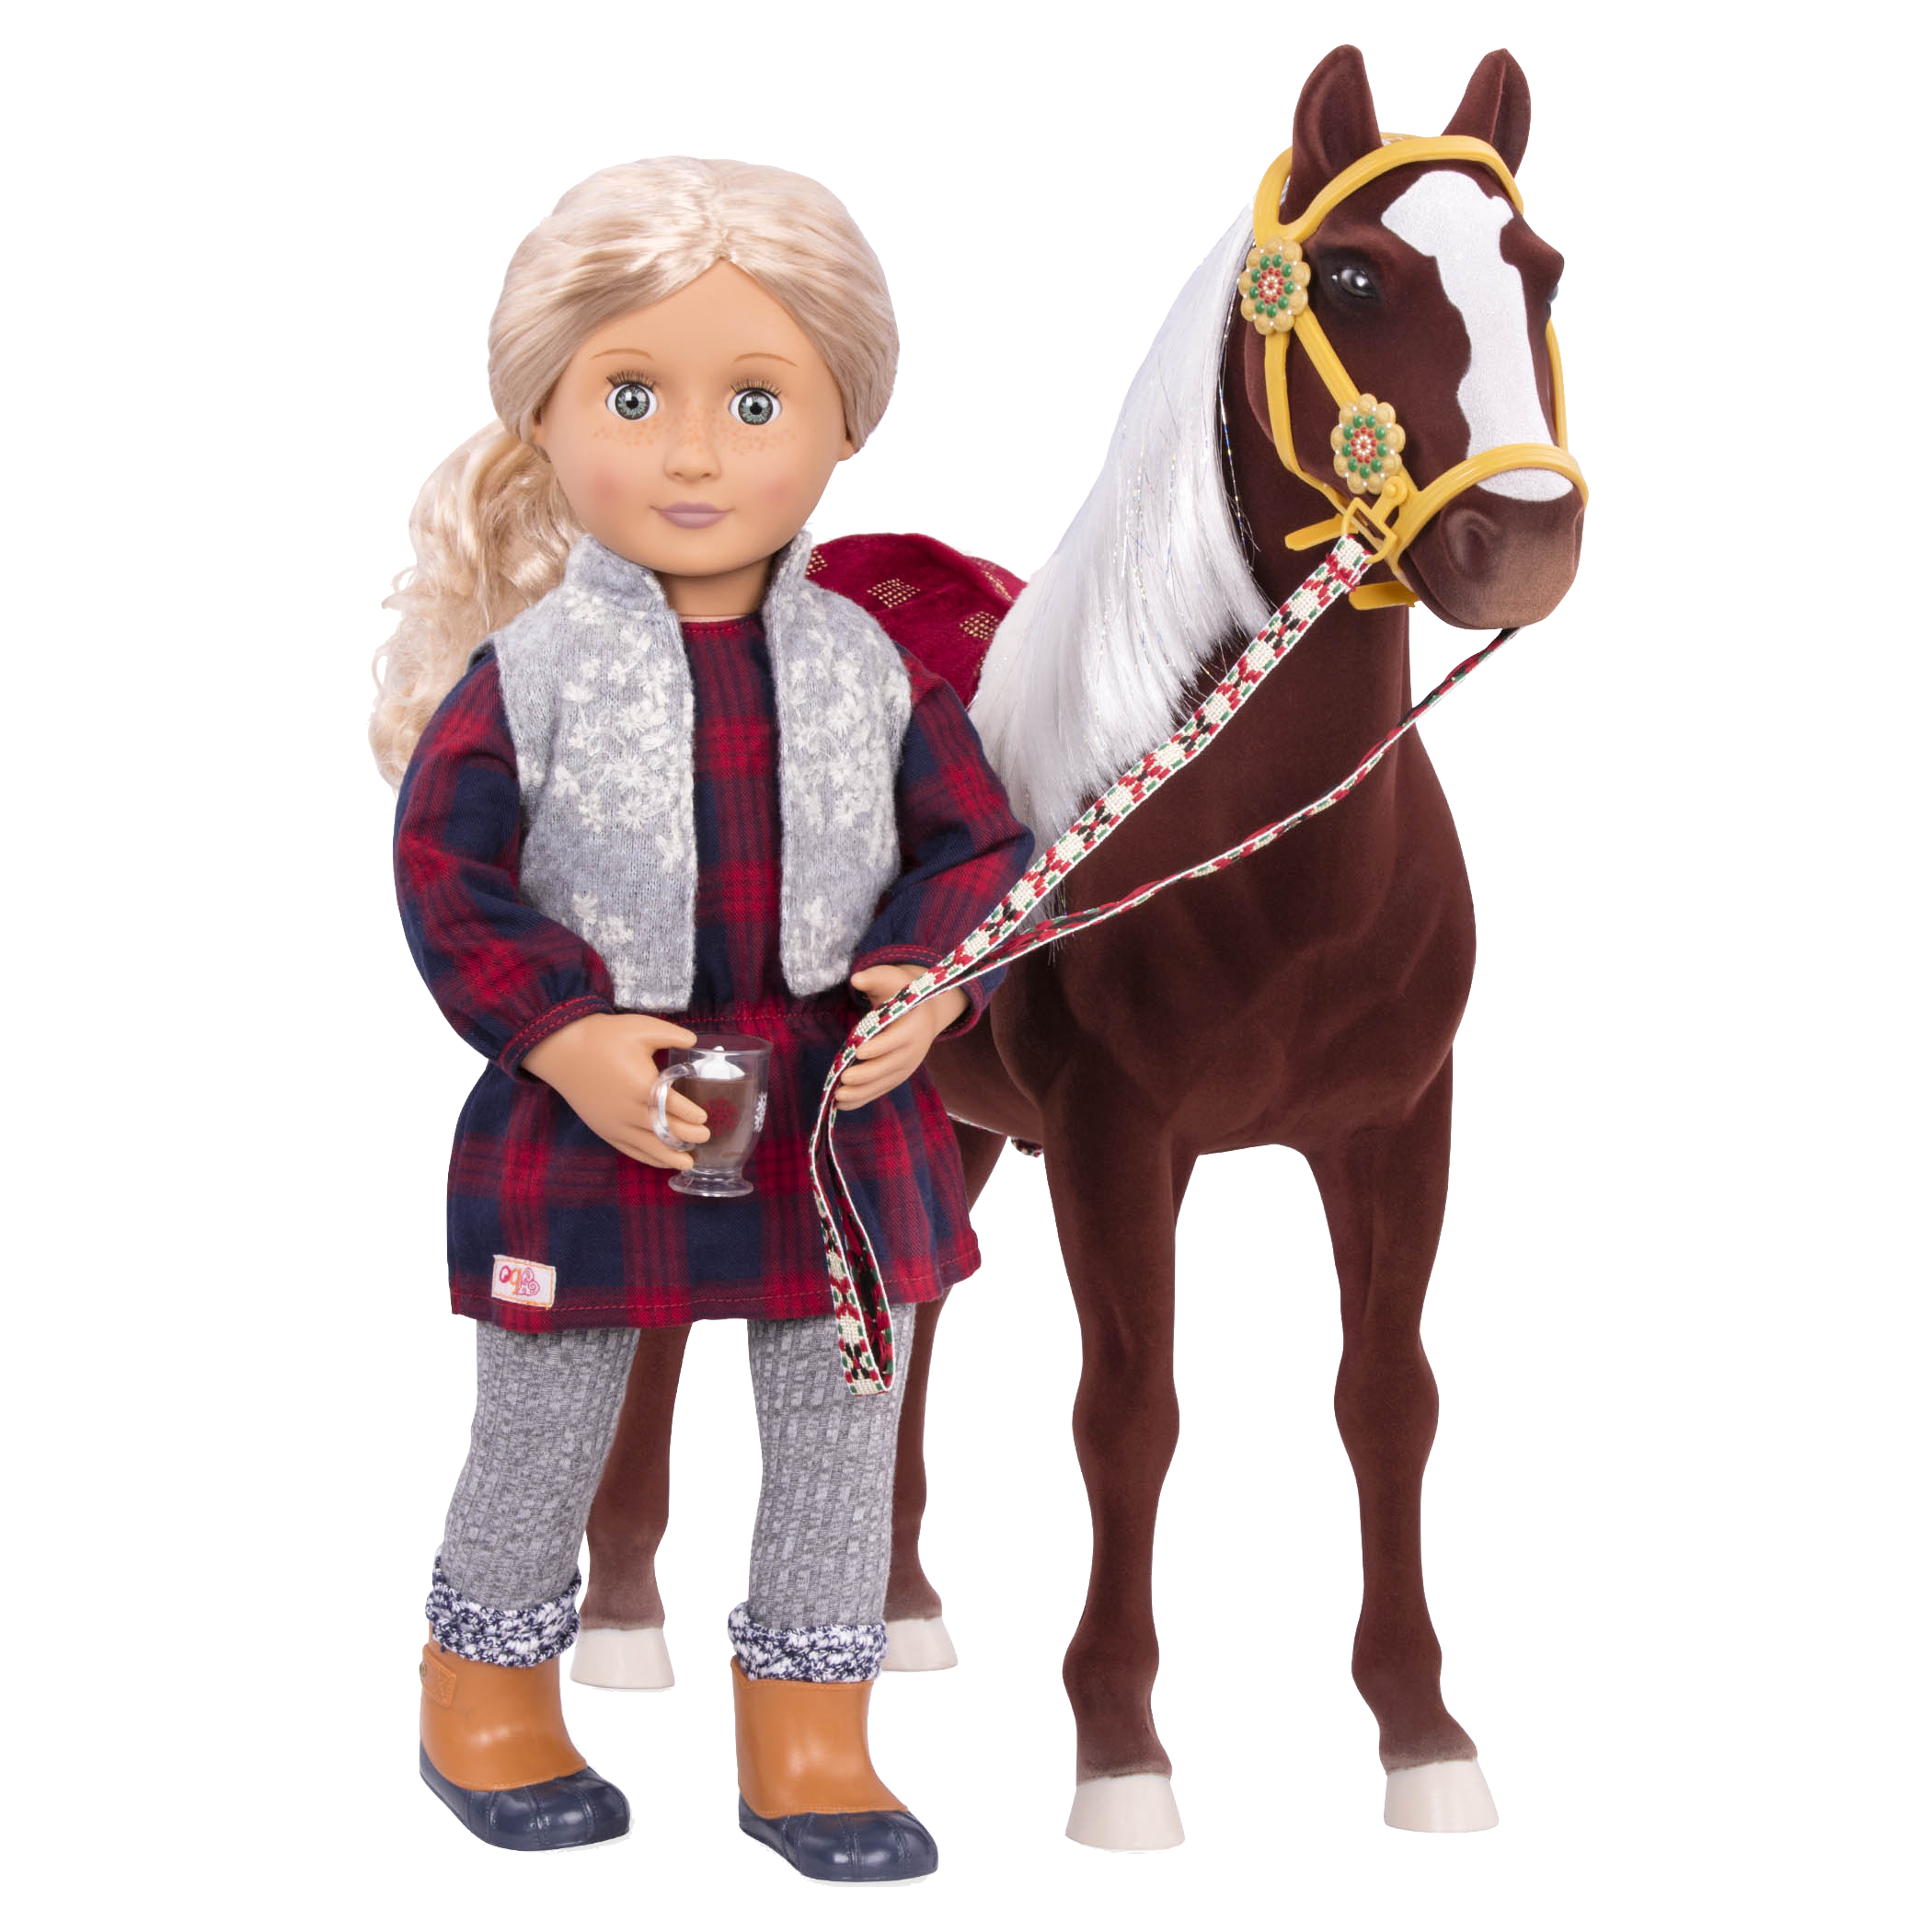 Coral and Winter Wonder horse wearing cocoa cozy outfit